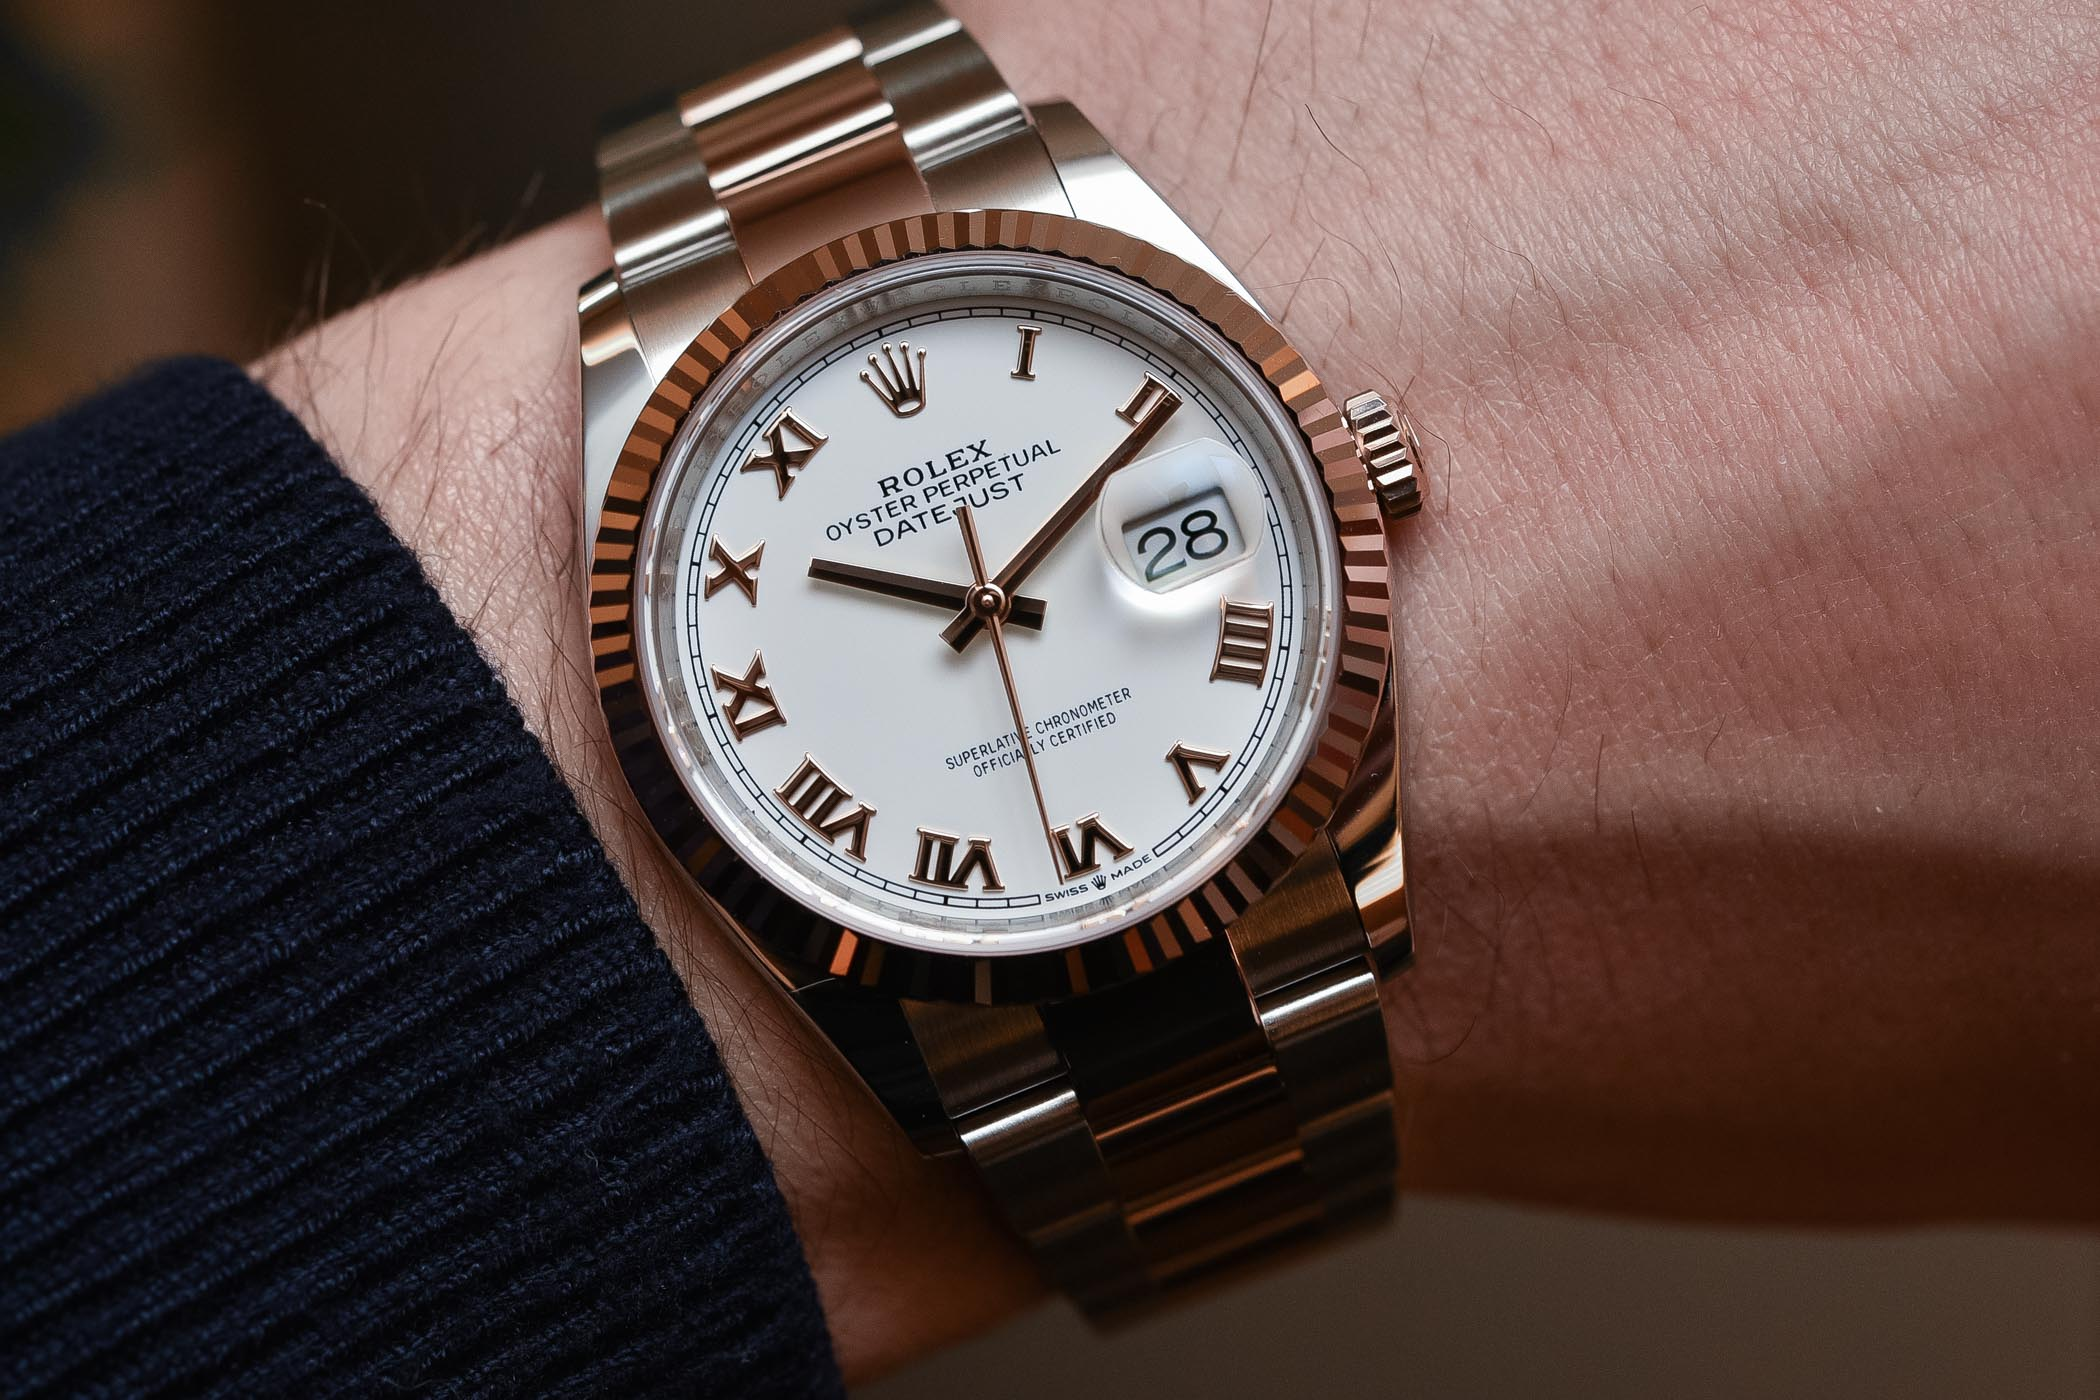 2018 Rolex Datejust 36 ref 126231 Rolesor Everose calibre 3235